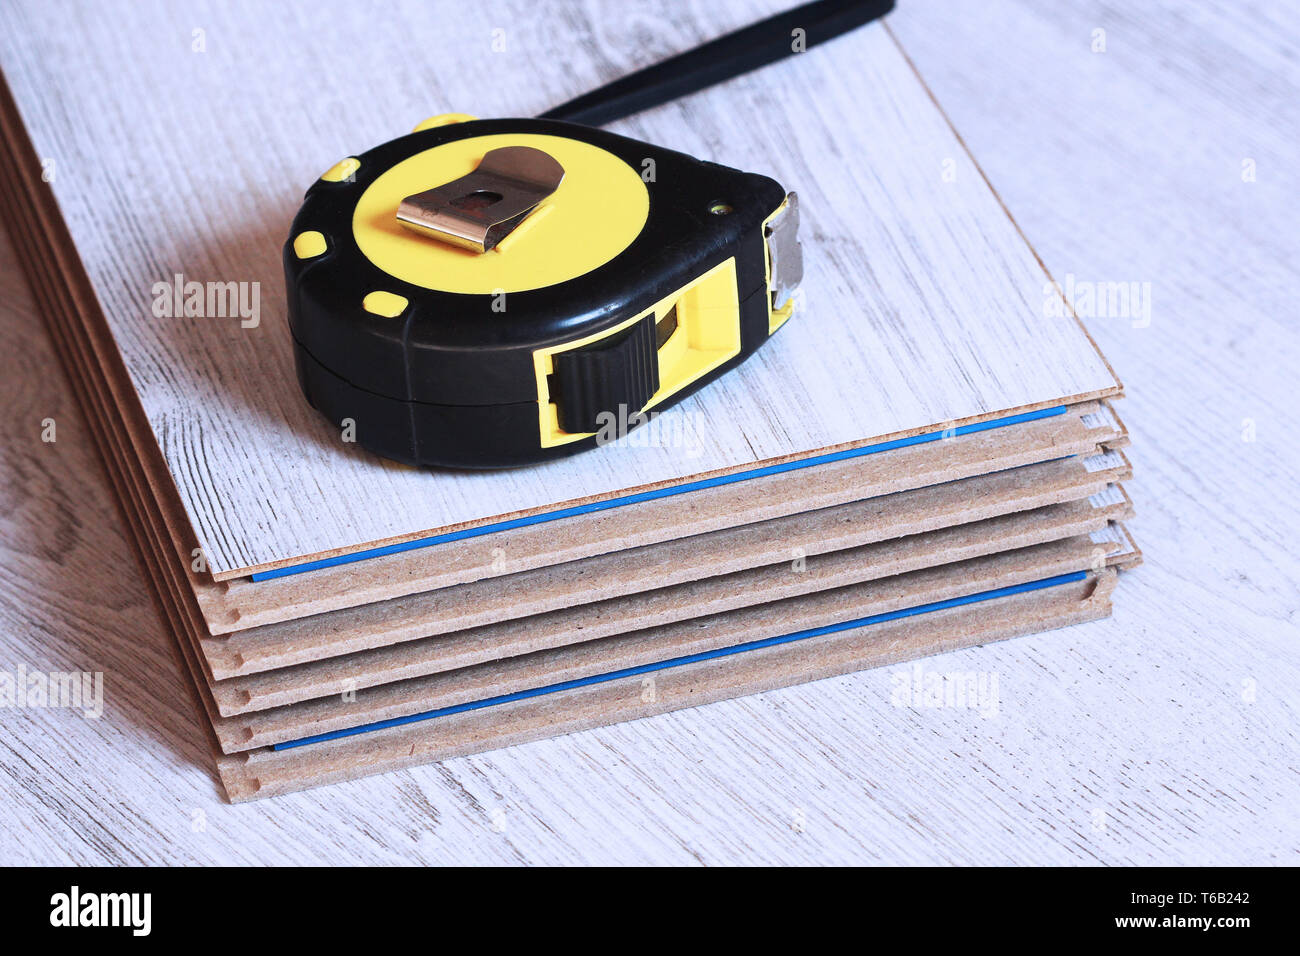 Laminate floor planks and tools on wooden background - Stock Image